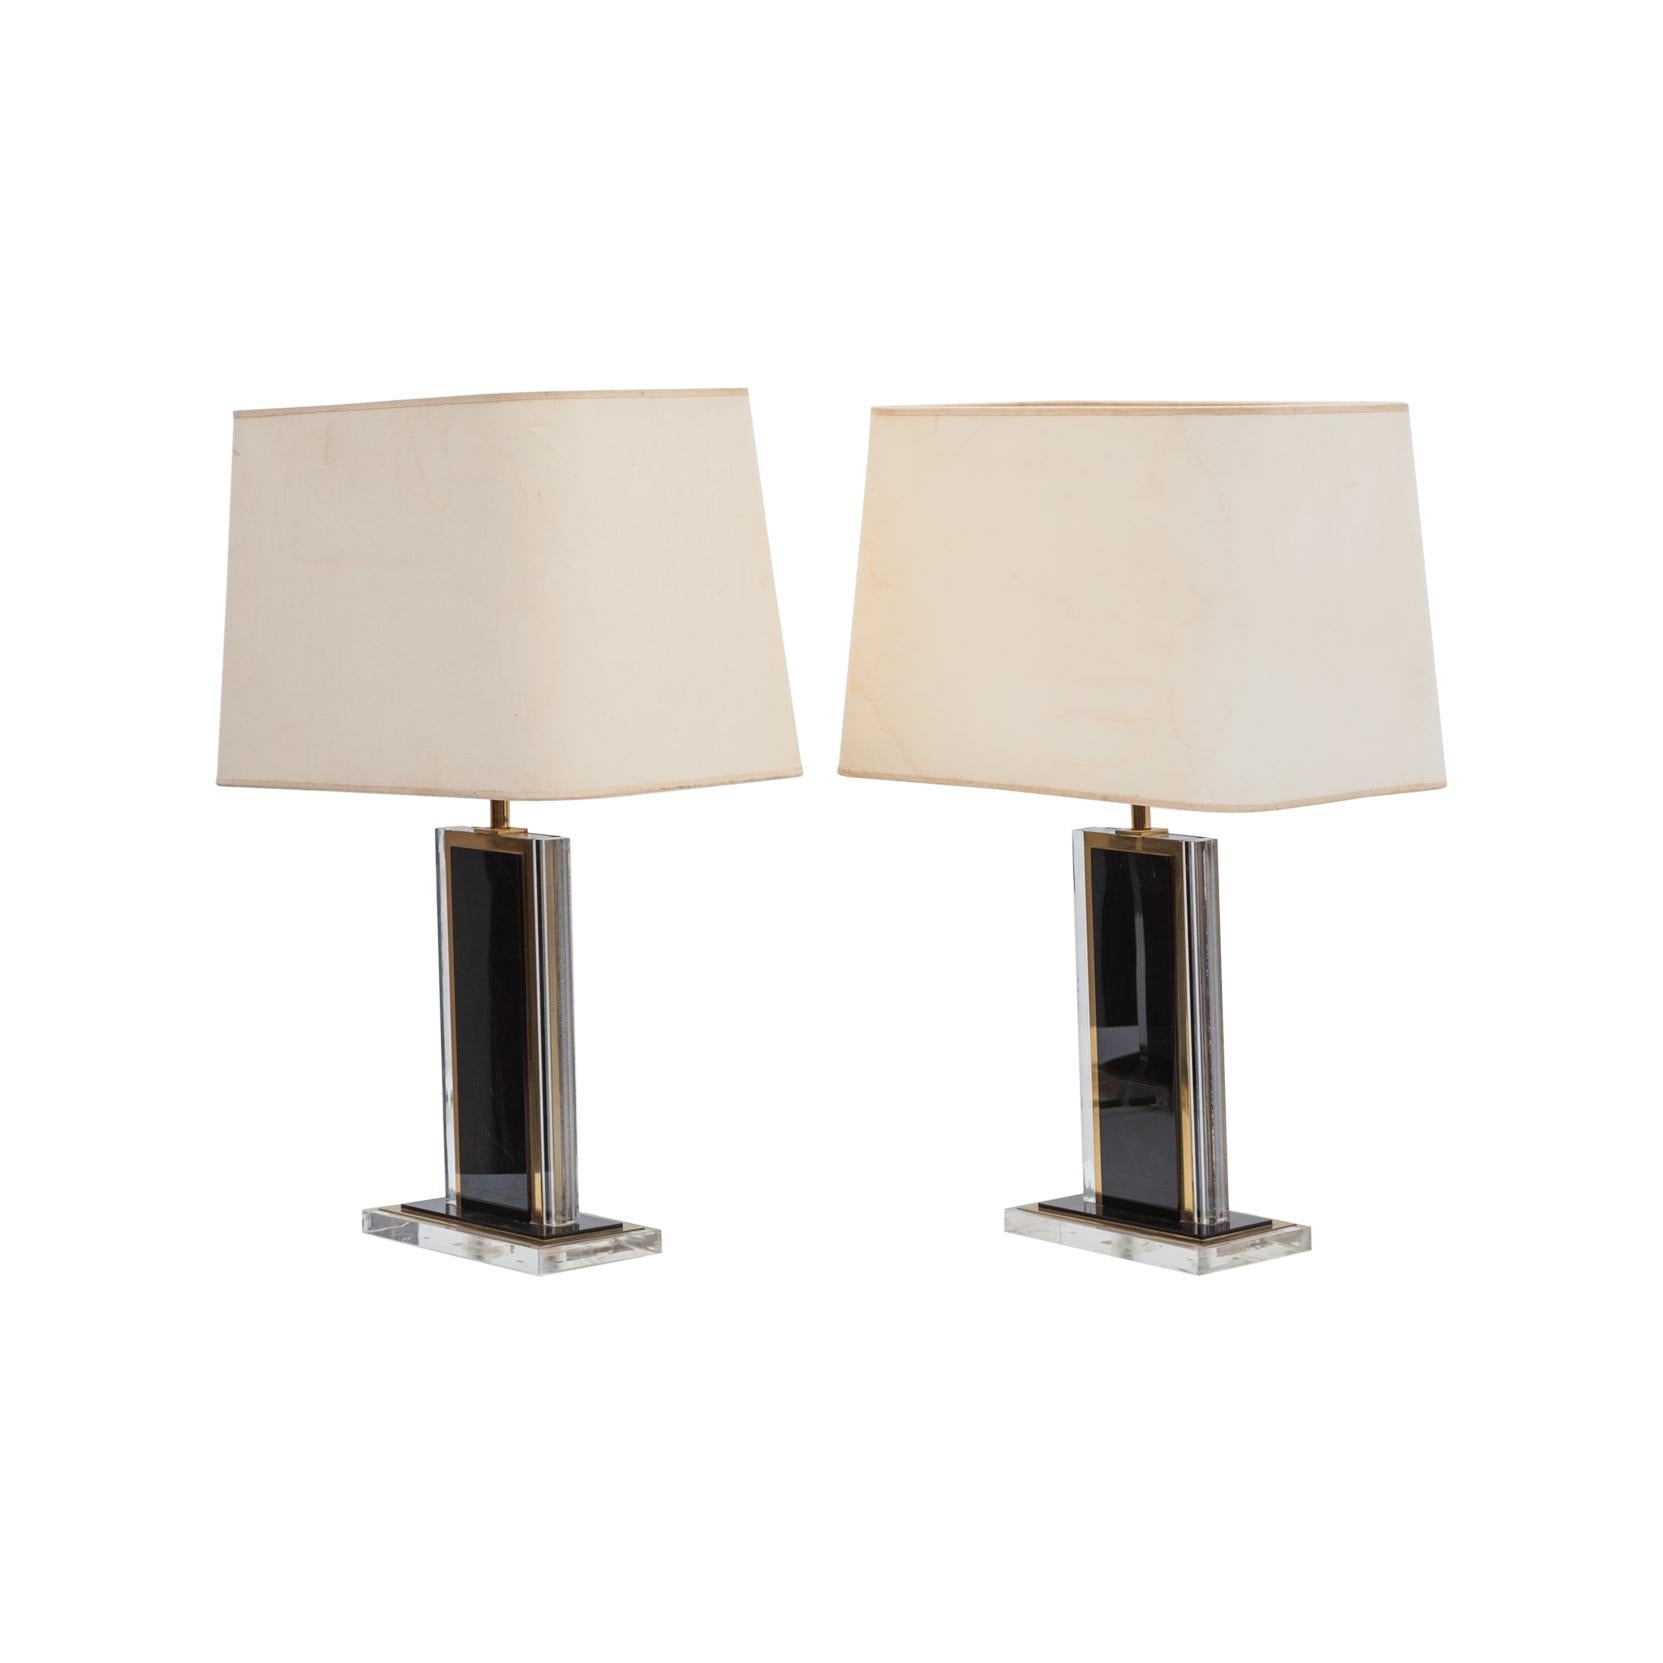 Set of 1970s Black and Clear Lucite and Brass Table Lamps, France